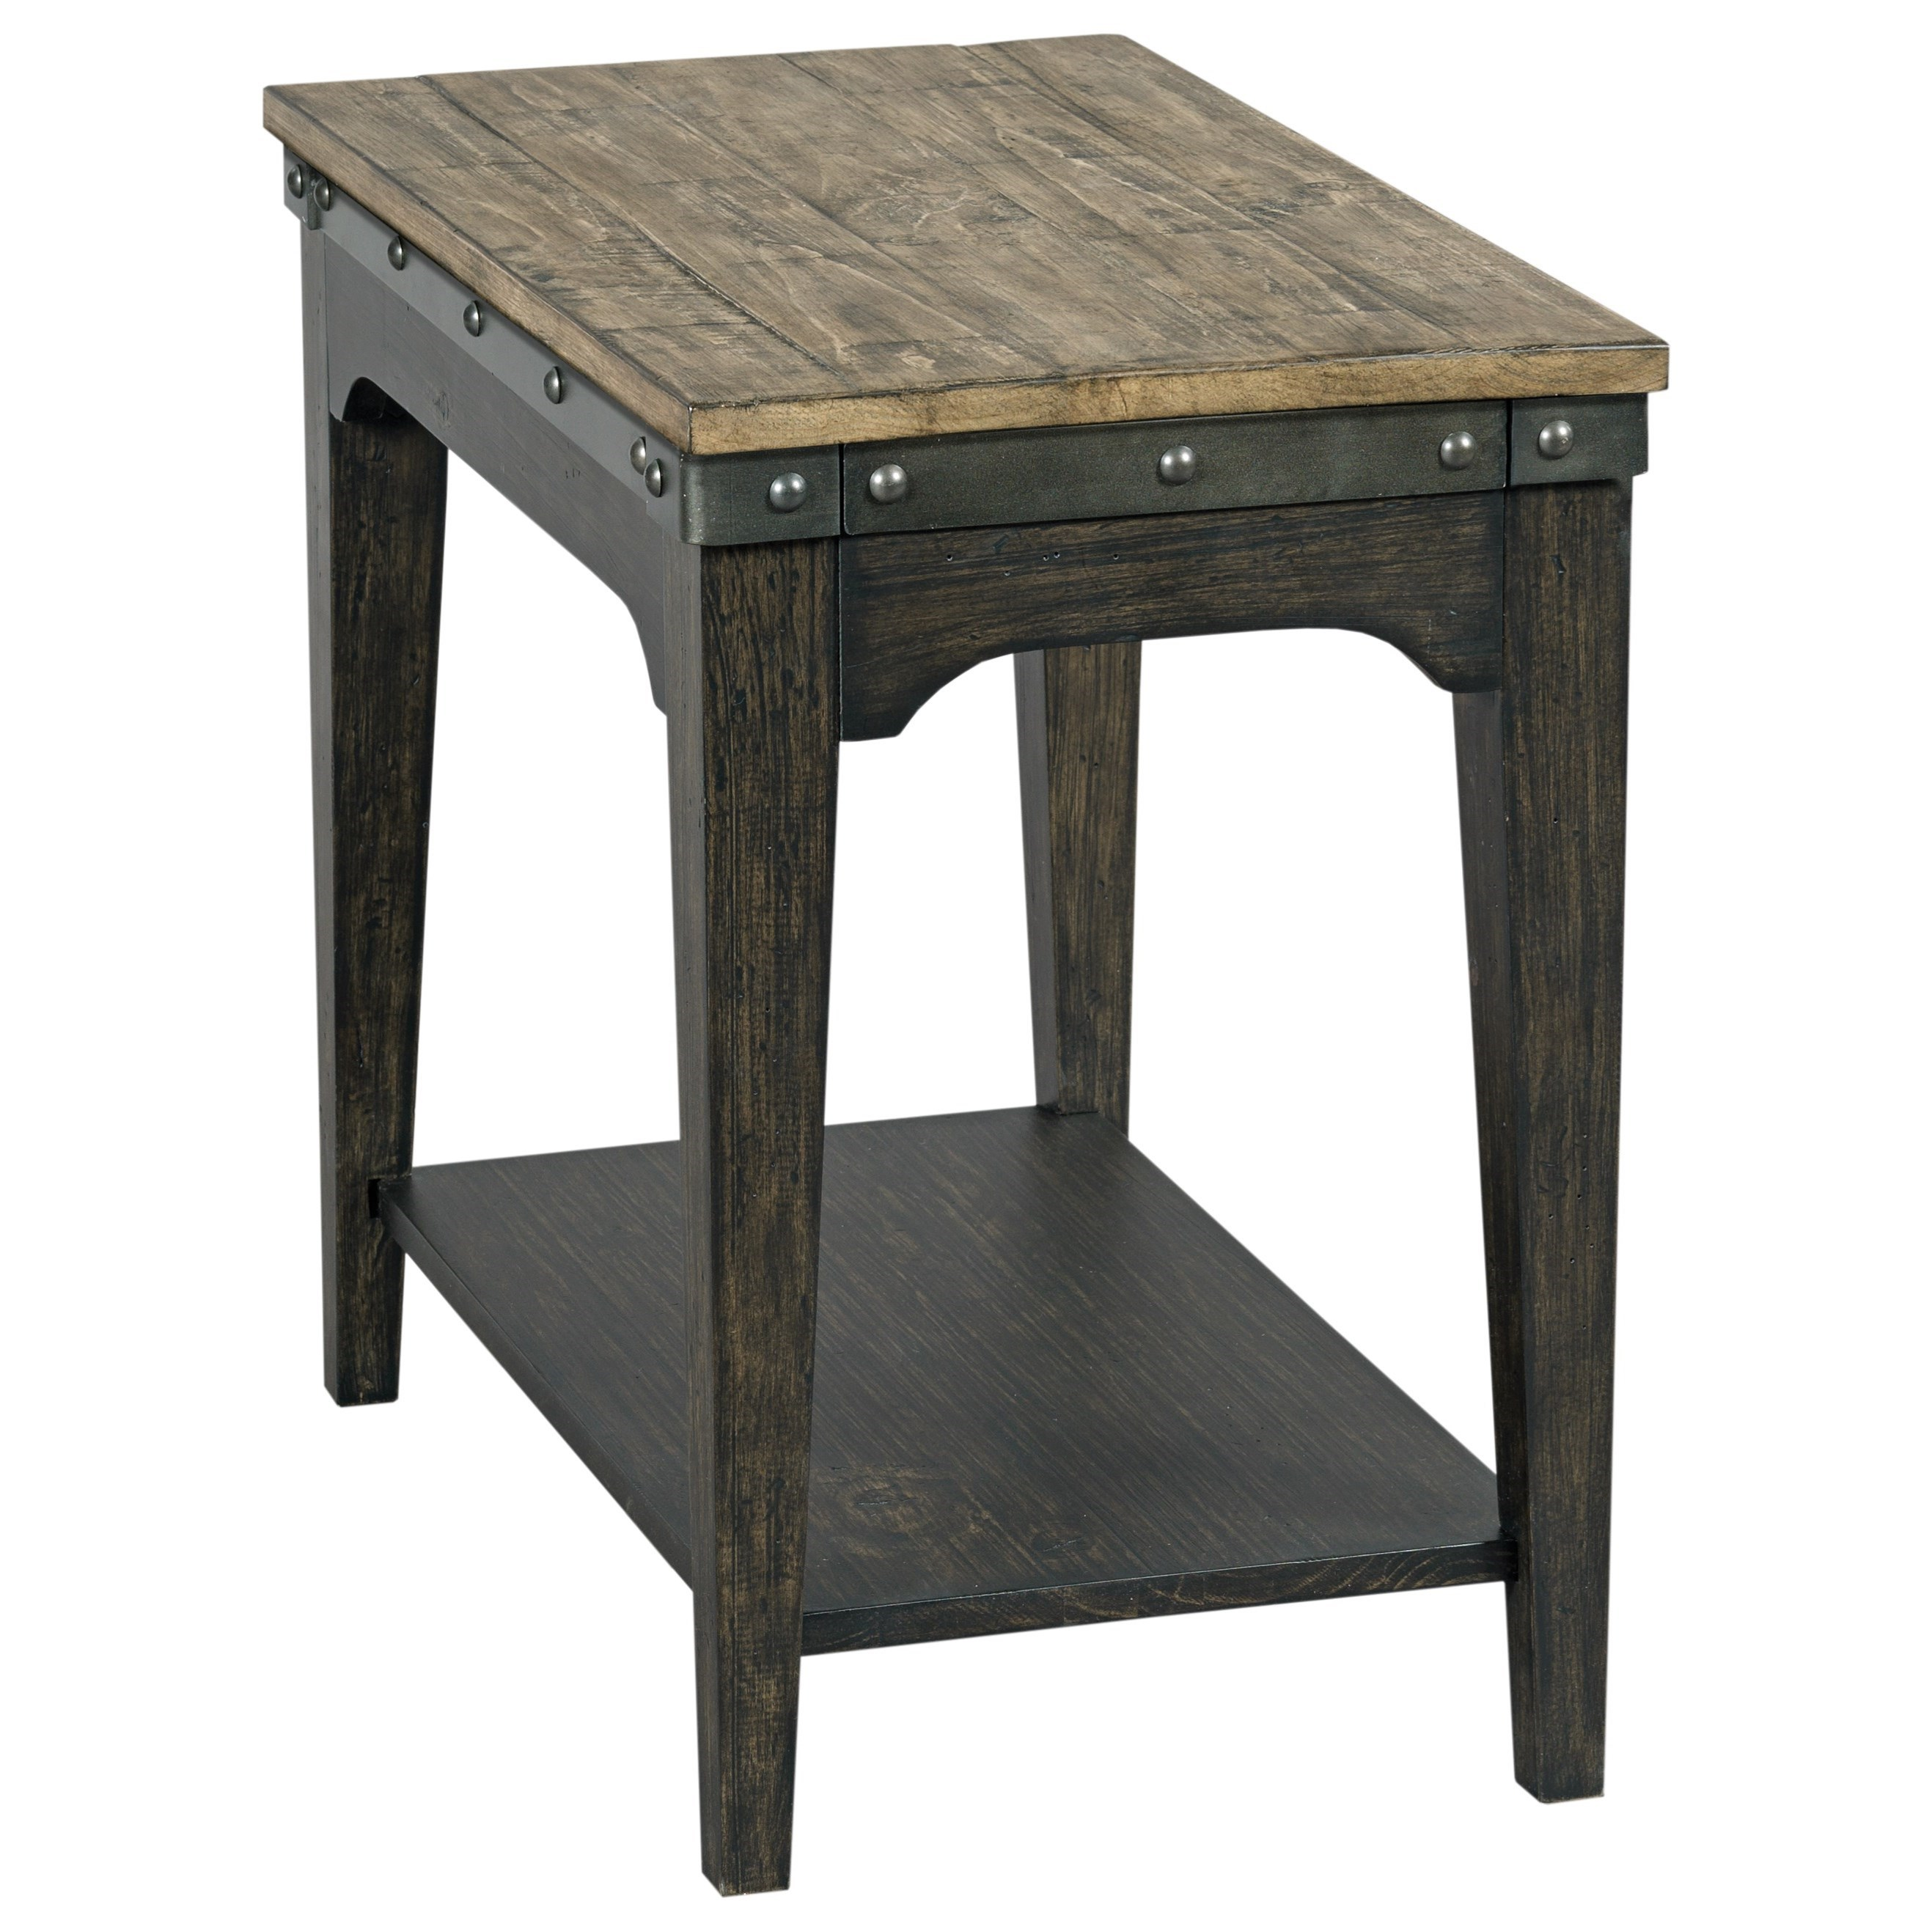 Plank Road Artisans Chairside Table                     by Kincaid Furniture at Darvin Furniture